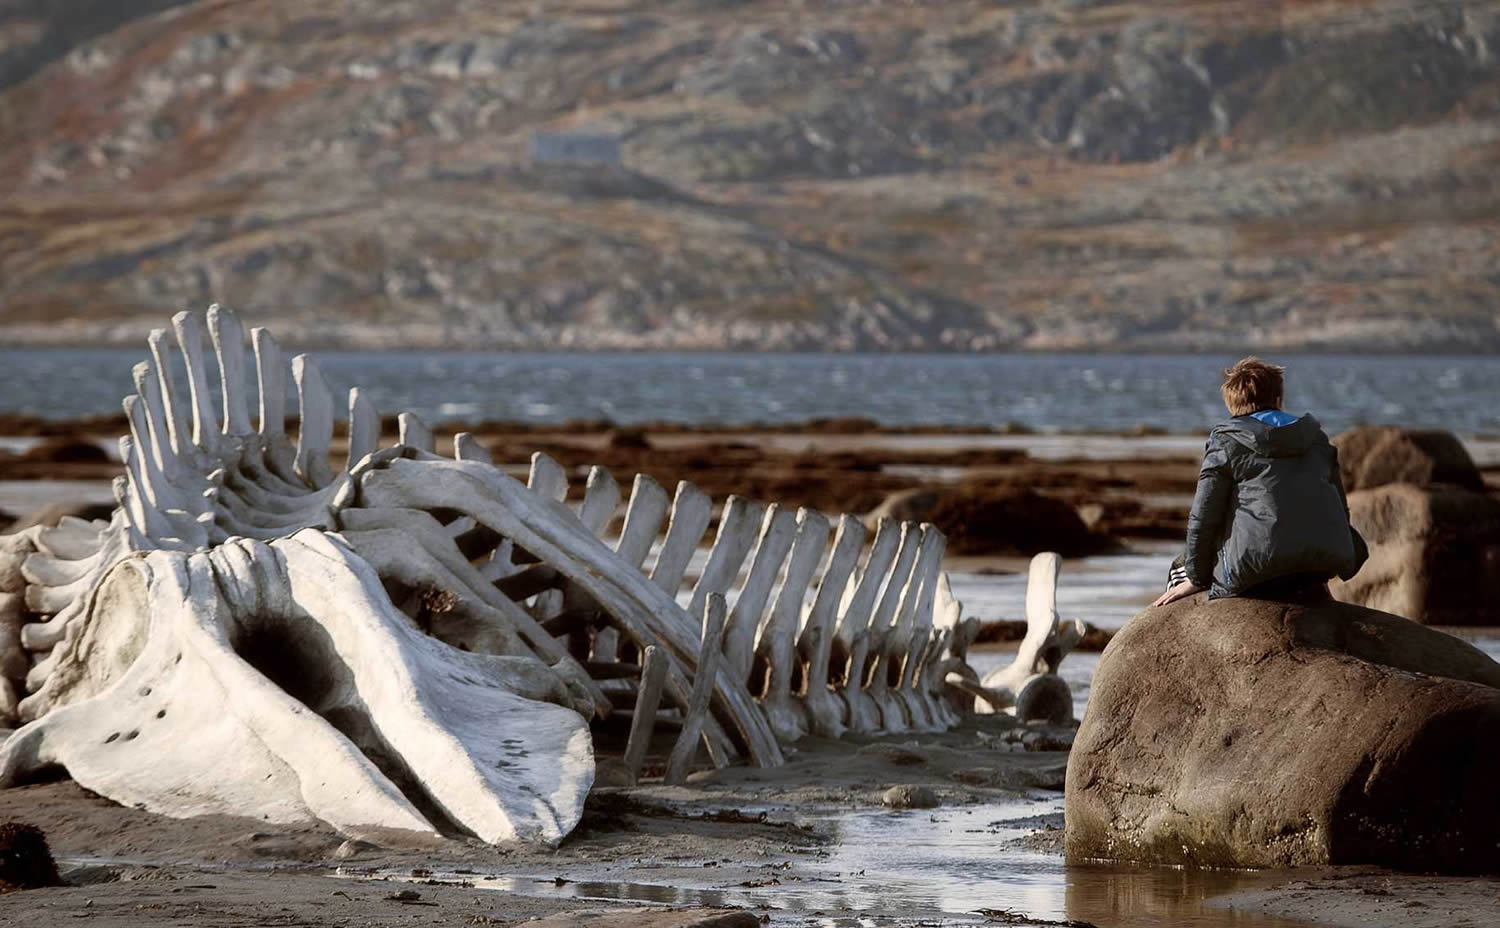 dinosaur bones on sea shore, person sitting on rock in Leviathan